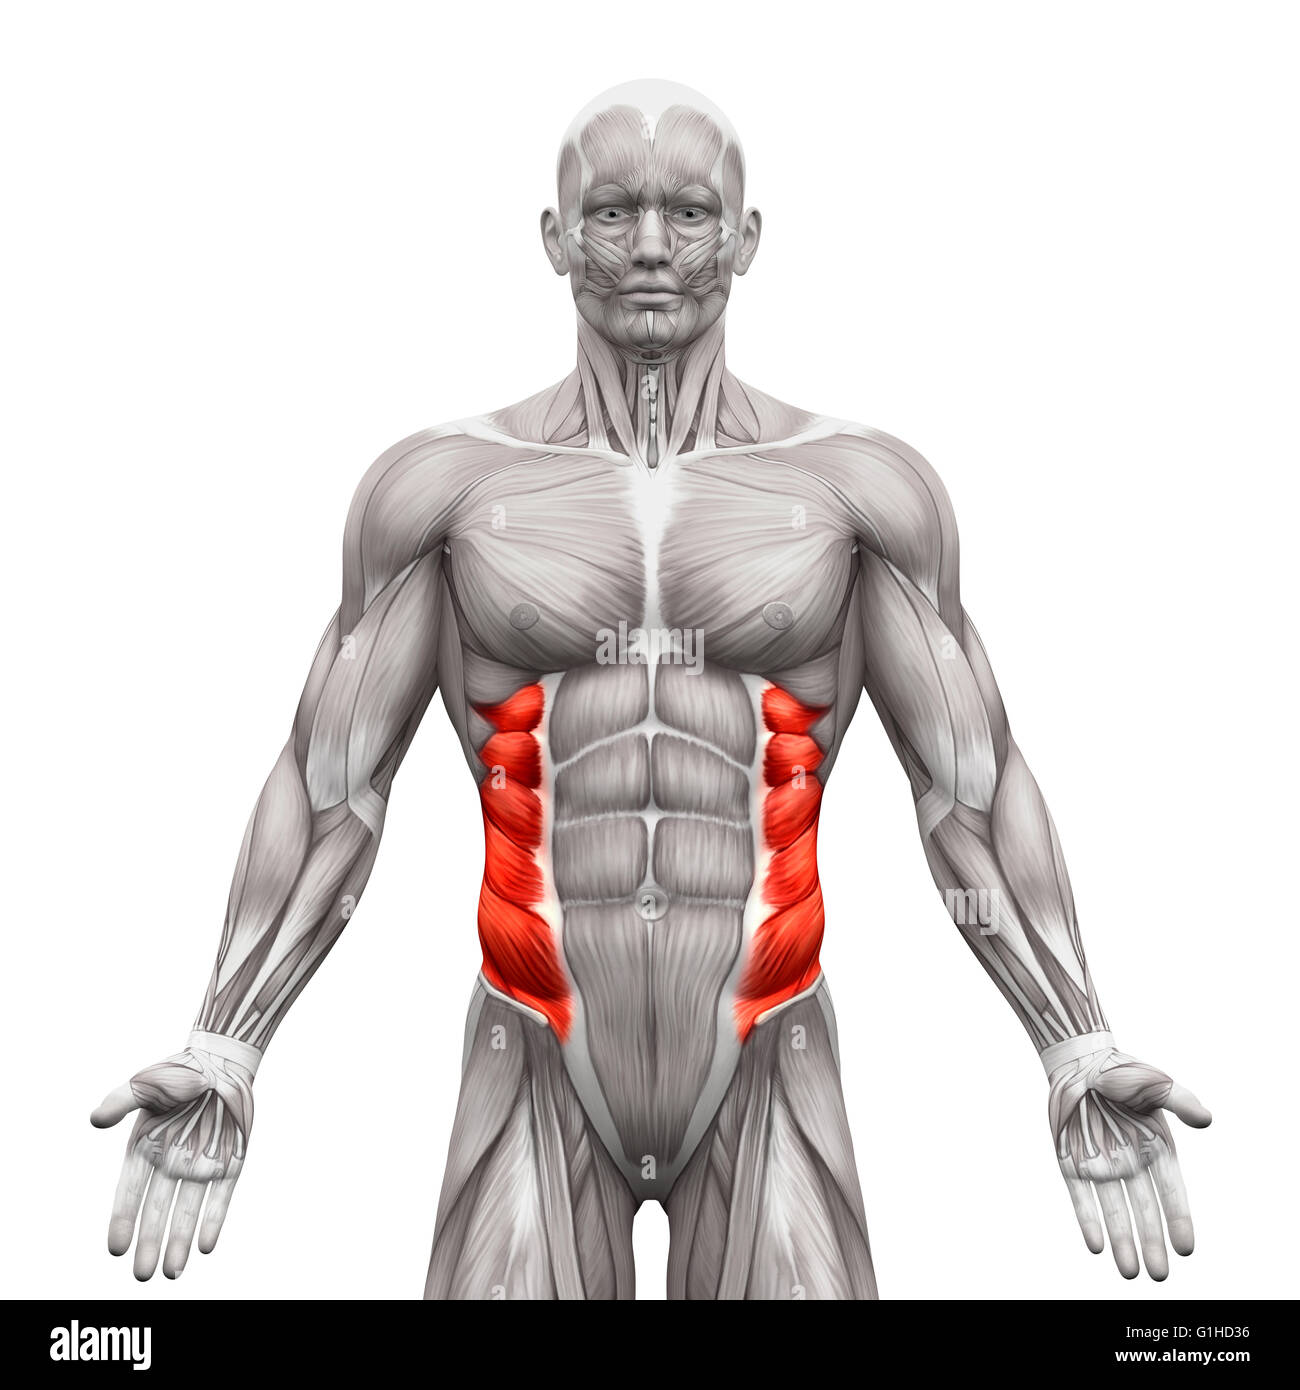 External Oblique Muscles - Anatomy Muscles isolated on white - 3D illustration - Stock Image